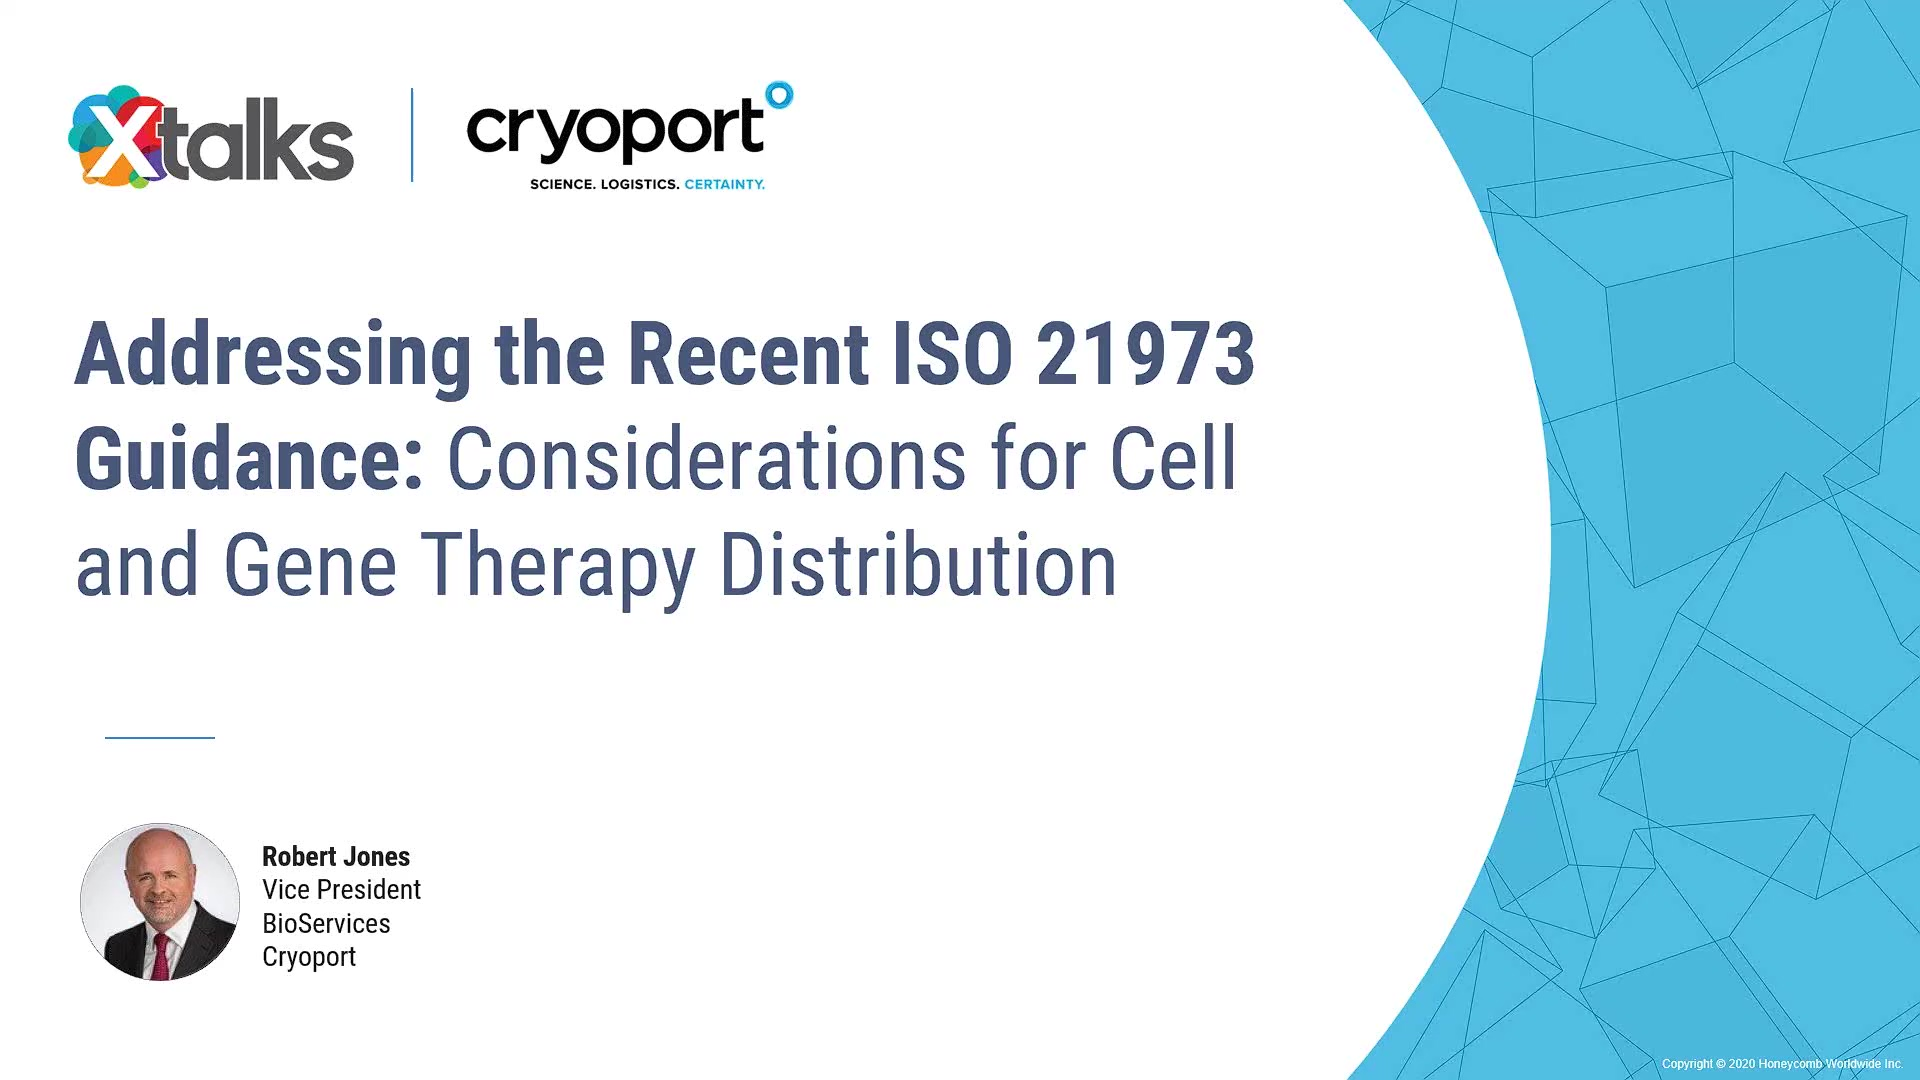 2020-10-01 11.01 Addressing the Recent ISO 21973 Guidance_ Considerations for Cell and Gene Therapy